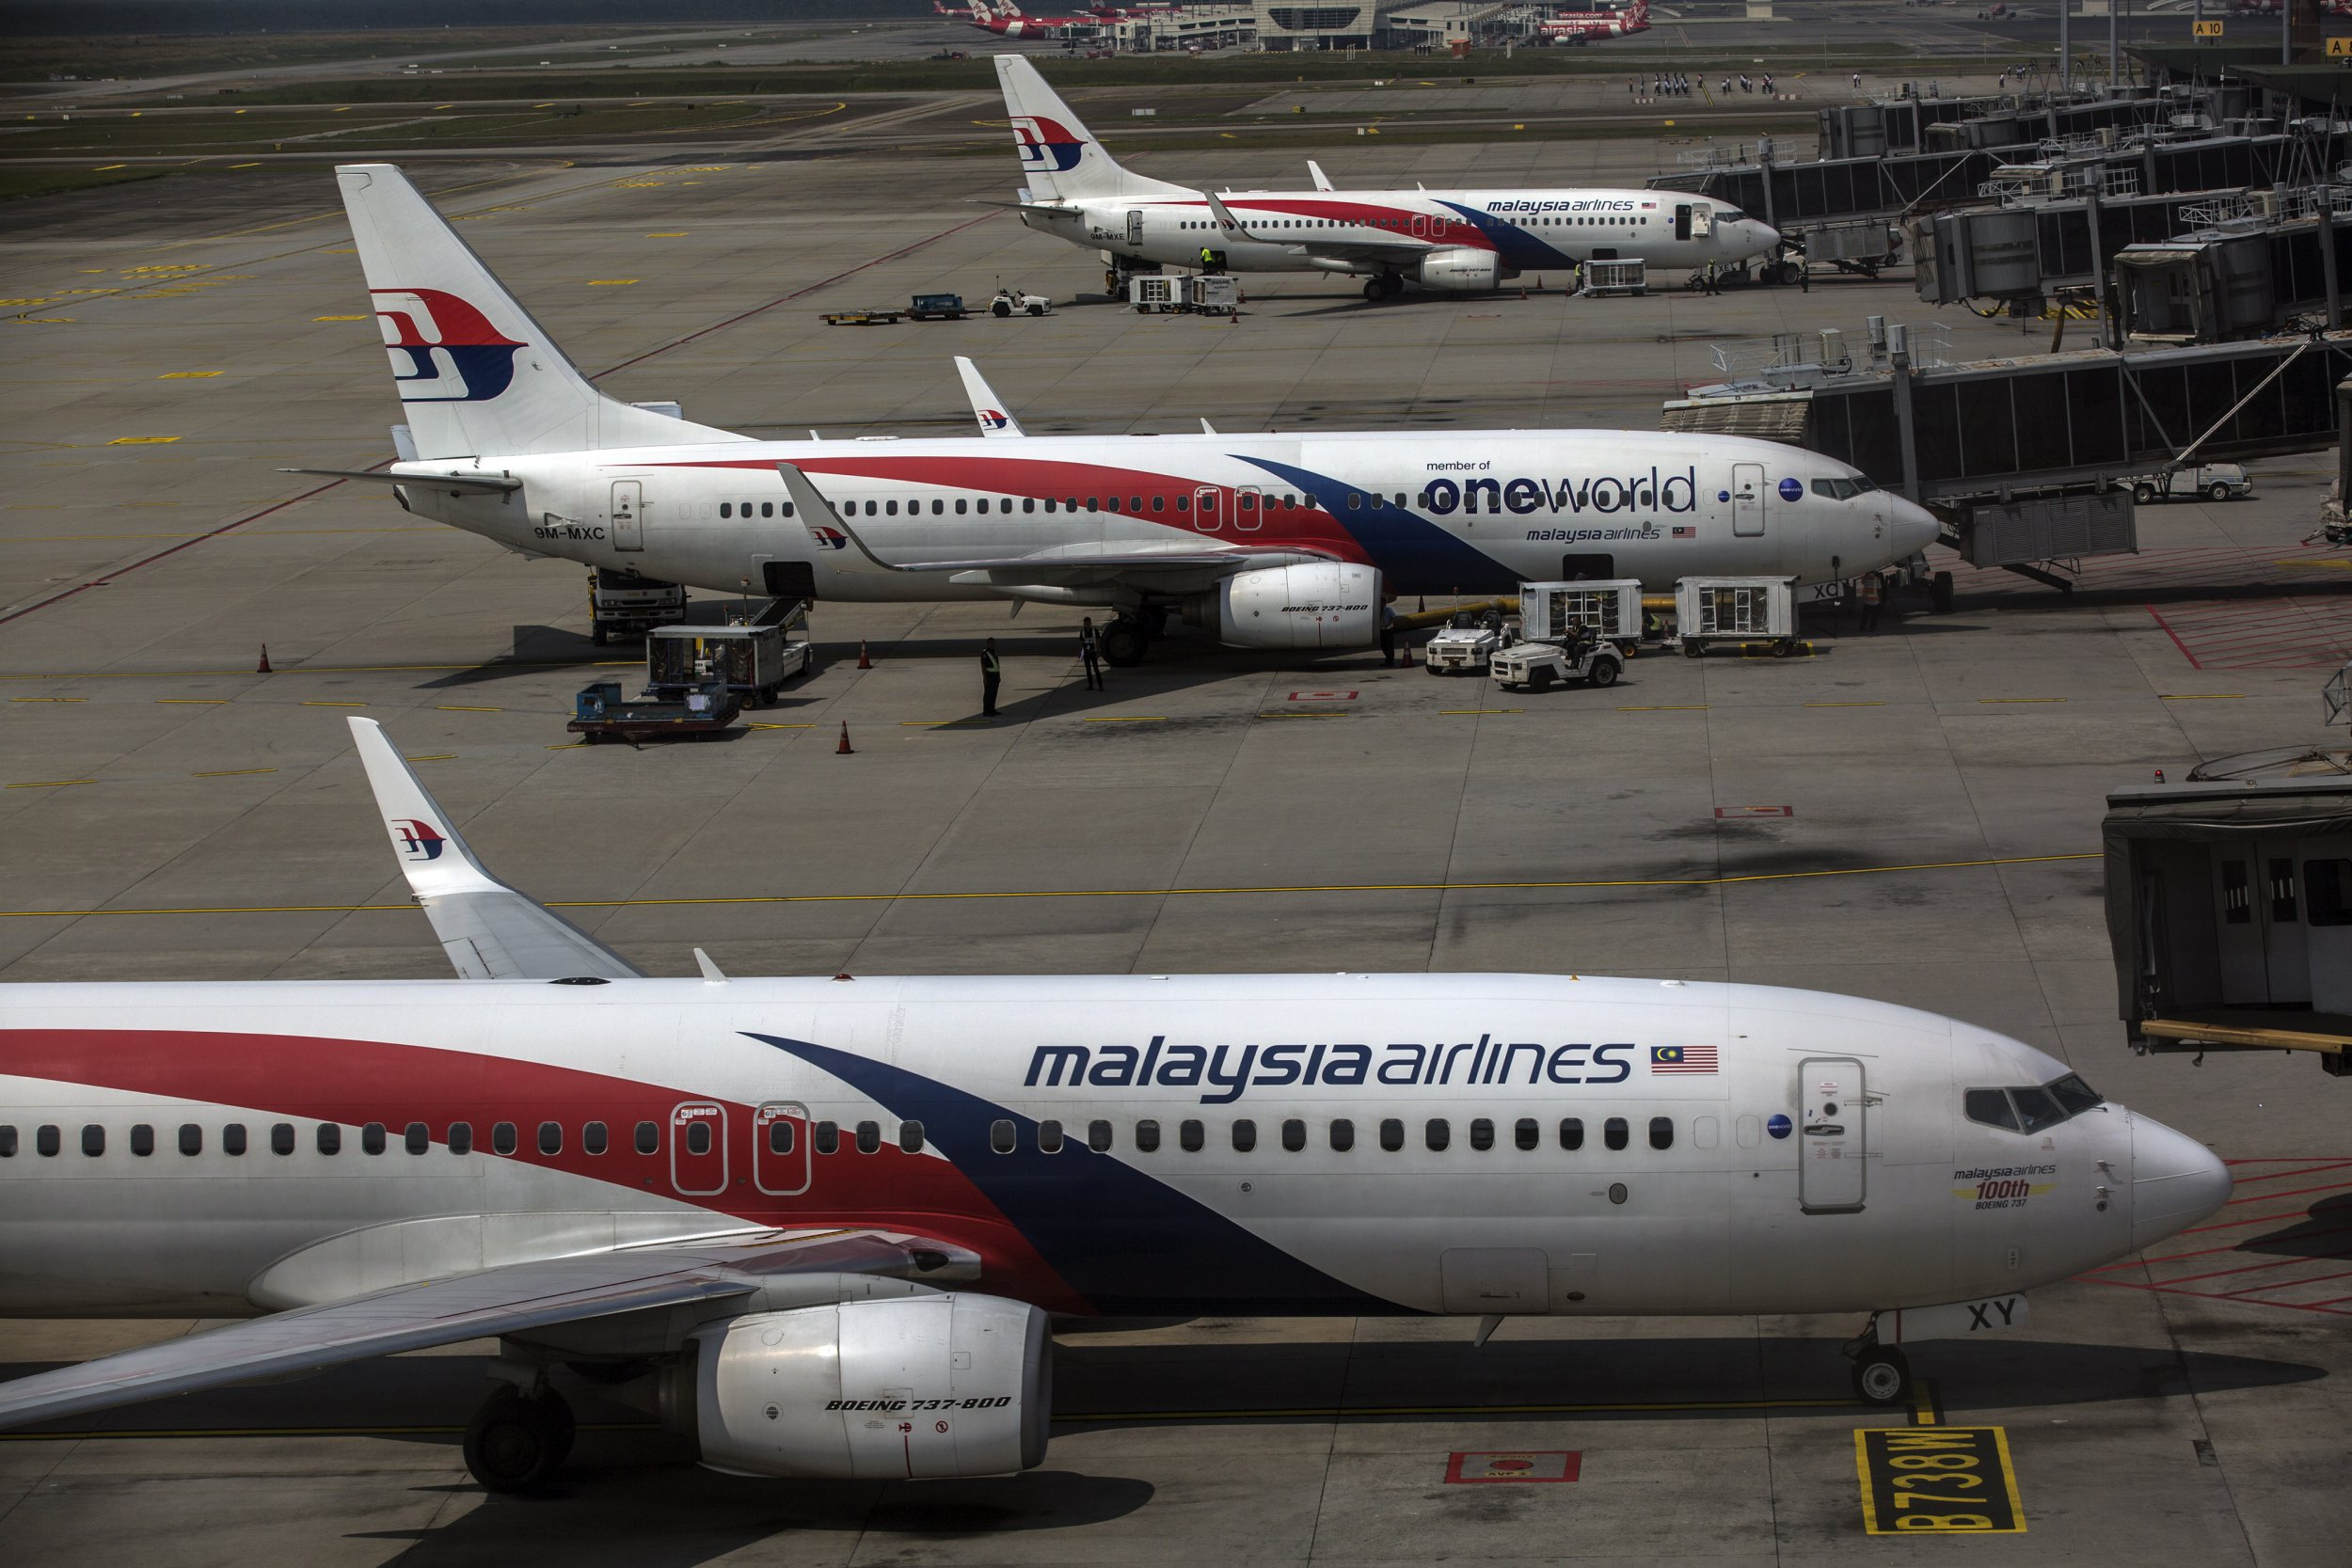 epa07421432 Malaysia Airlines aircraft are seen from the viewing gallery at the Kuala Lumpur International Airport in Sepang, Selangor, Malaysia, 08 March 2019. Malaysia Airlines flight MH370 went missing on its way from Kuala Lumpur to Beijing with the loss of all 239 people on board on 08 March 2014. EPA/AHMAD YUSNI